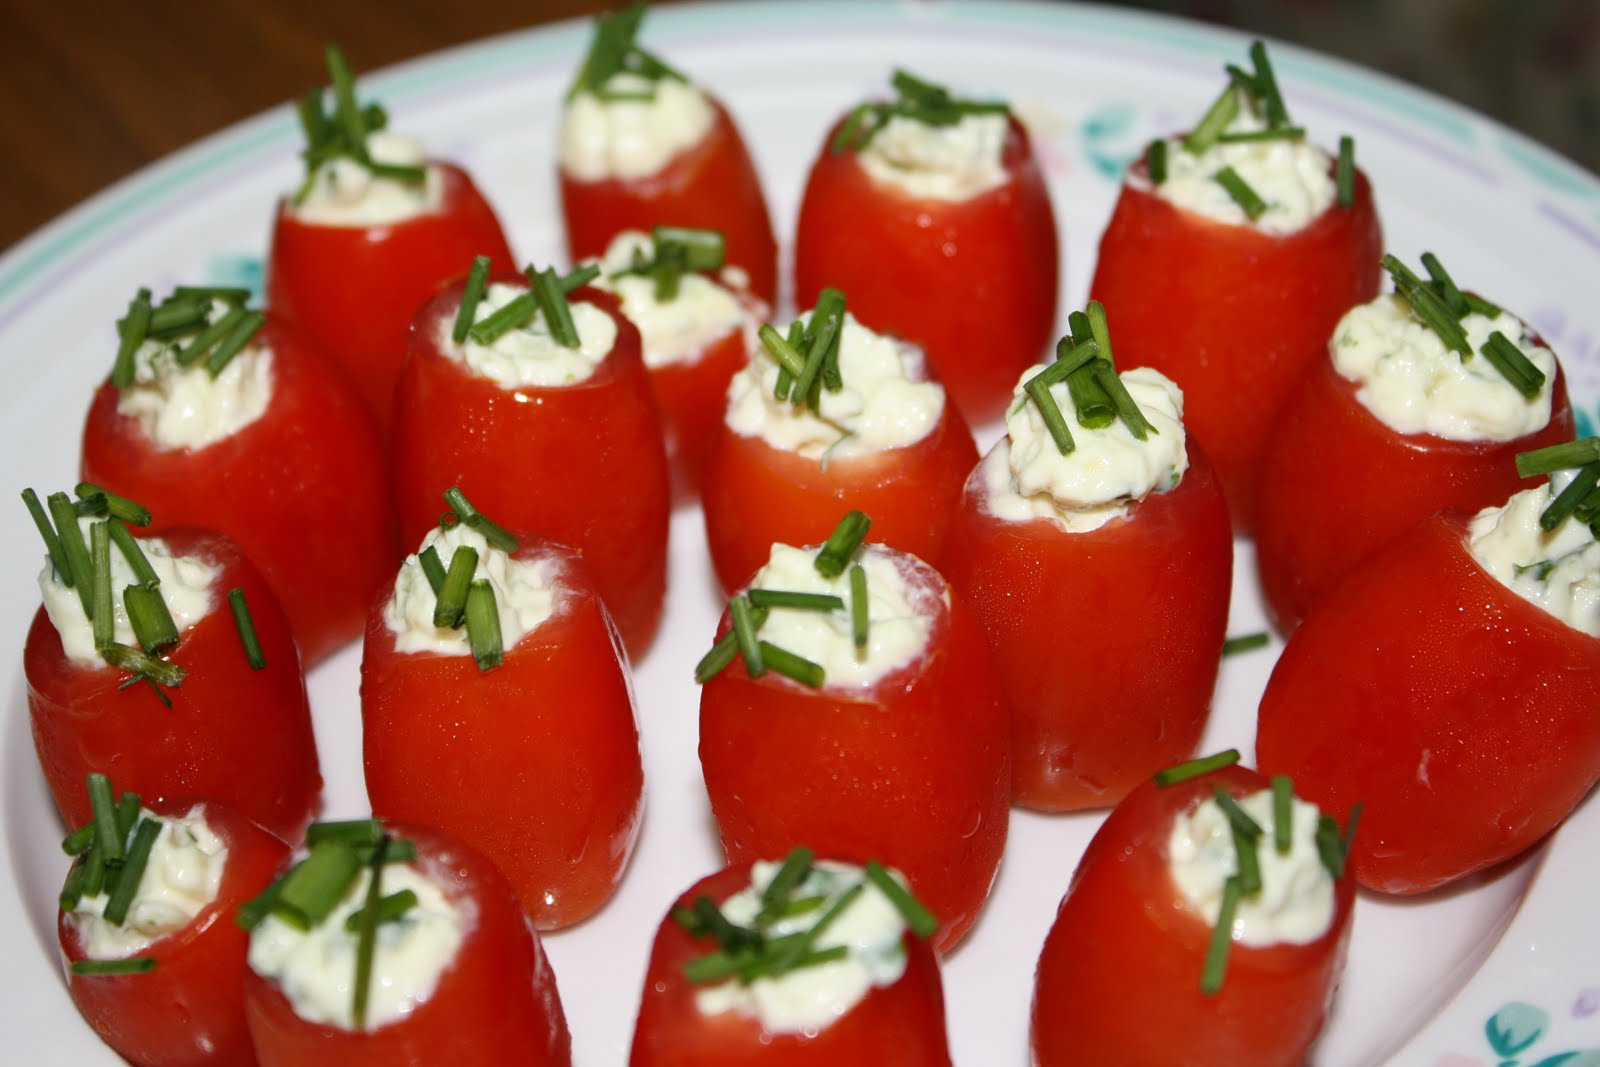 What To Do With Leftover Tomato Quick Ideas